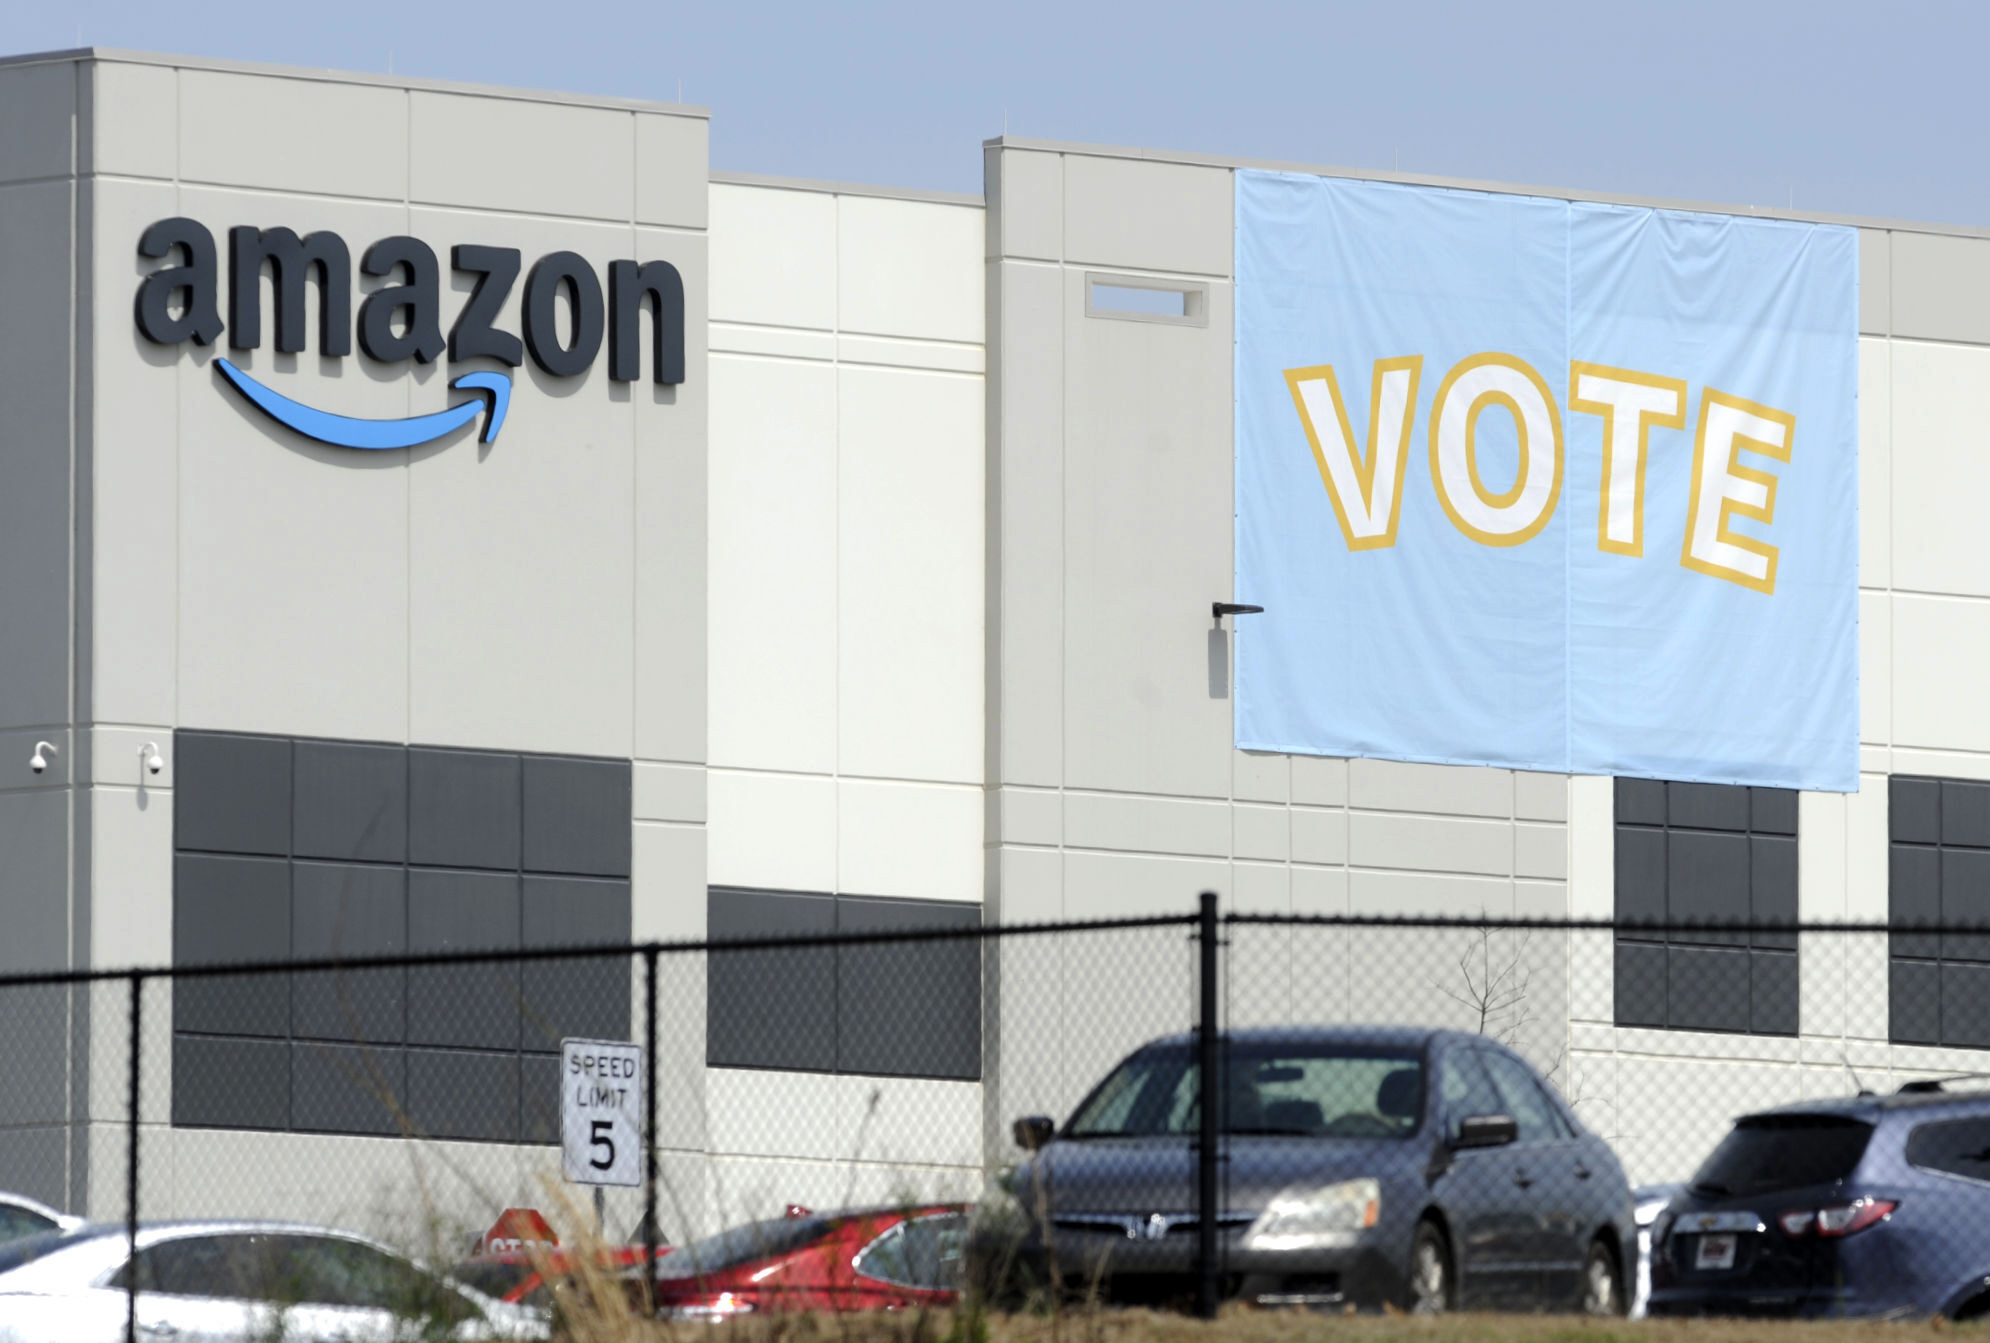 A U.S. labor judge ruled that Amazon meddled in a vote defeating a unionization attempt while an Indian court upheld a blocked megamerger.